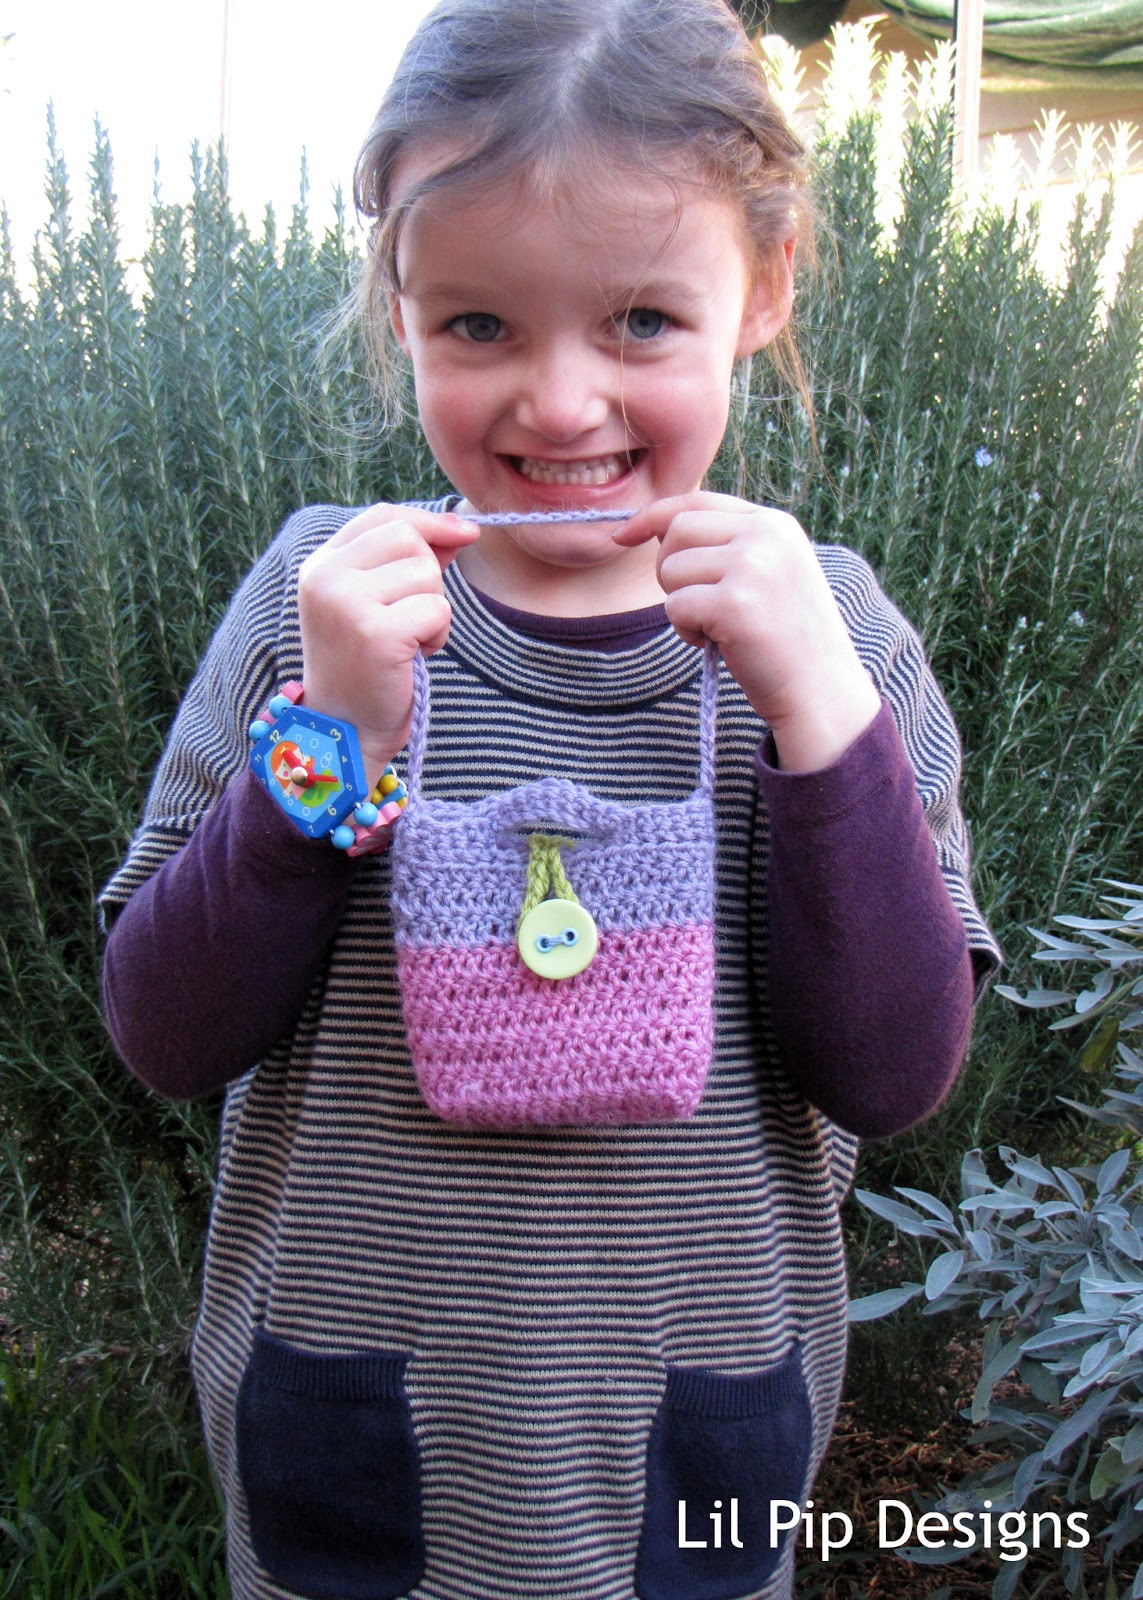 iMGSRC.RU LS MODELS imgsrc ru kids in nature : Do You Crochet This Adorable Crochet Little  Girls Purse Can